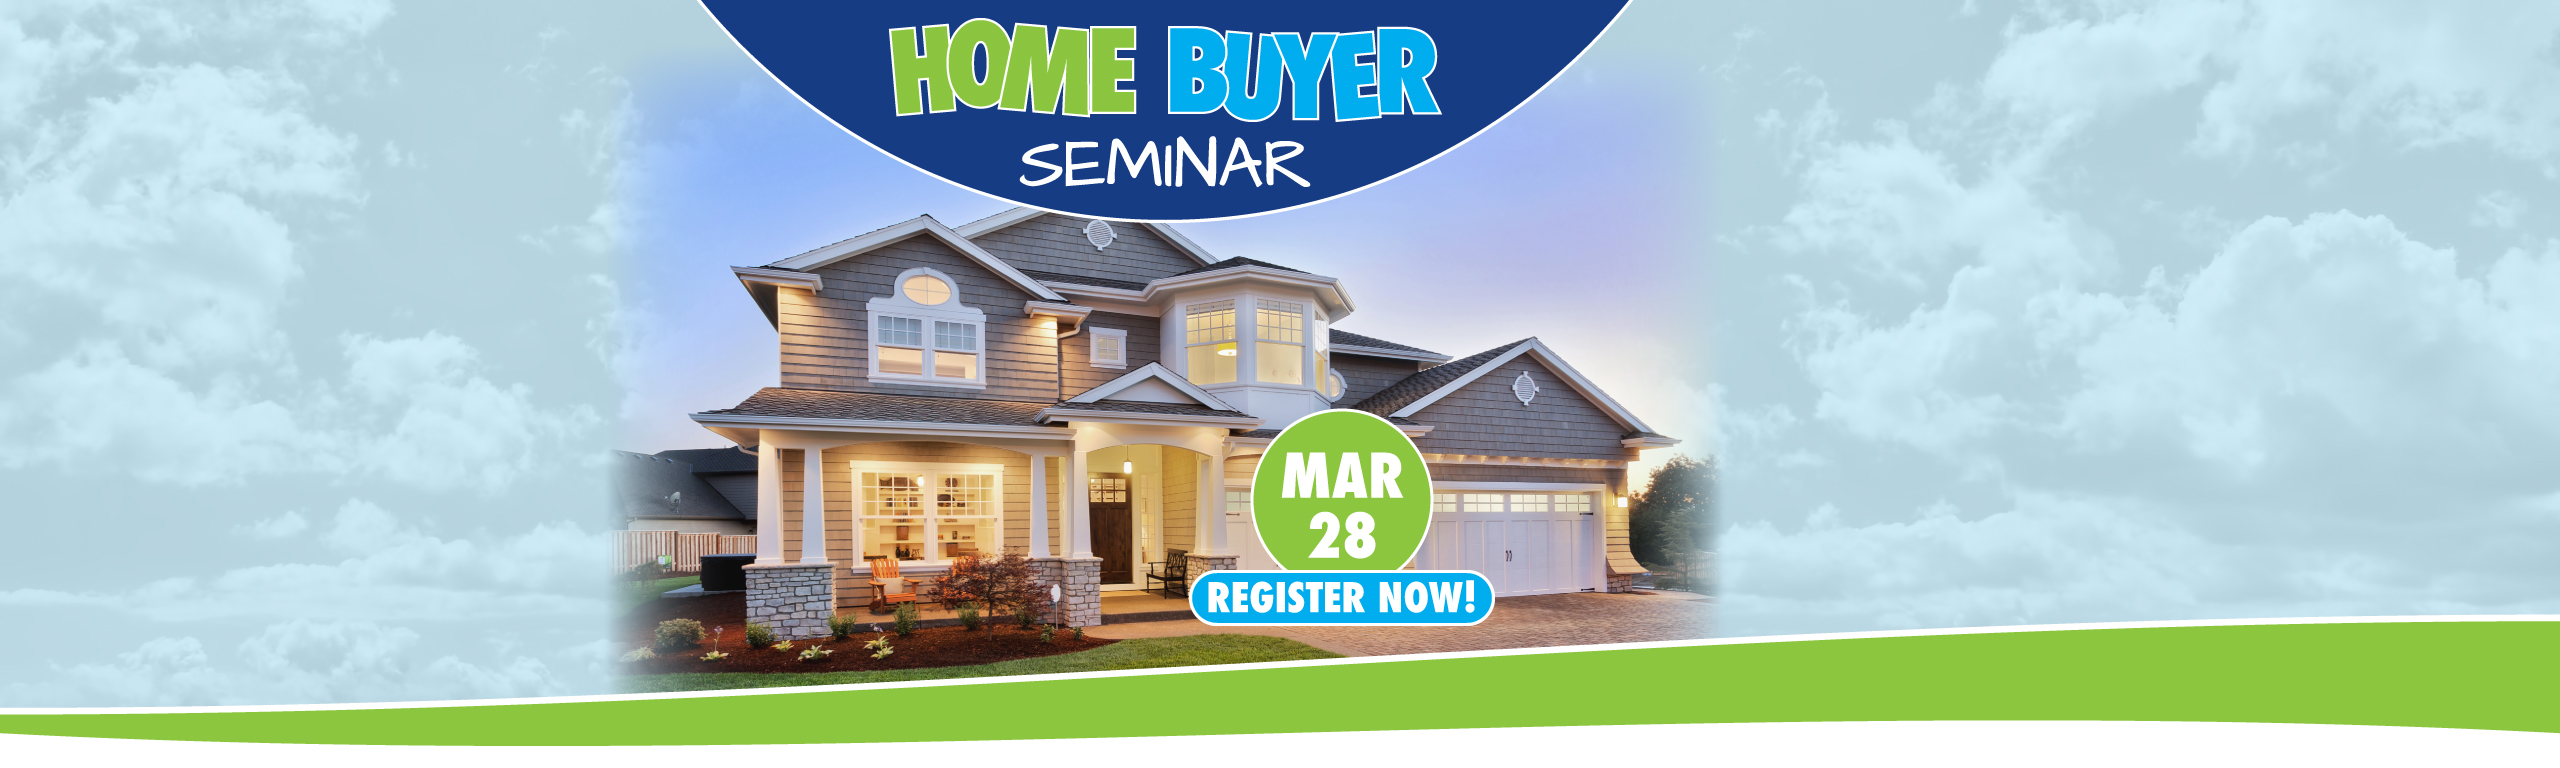 Home Buying Seminar March 28